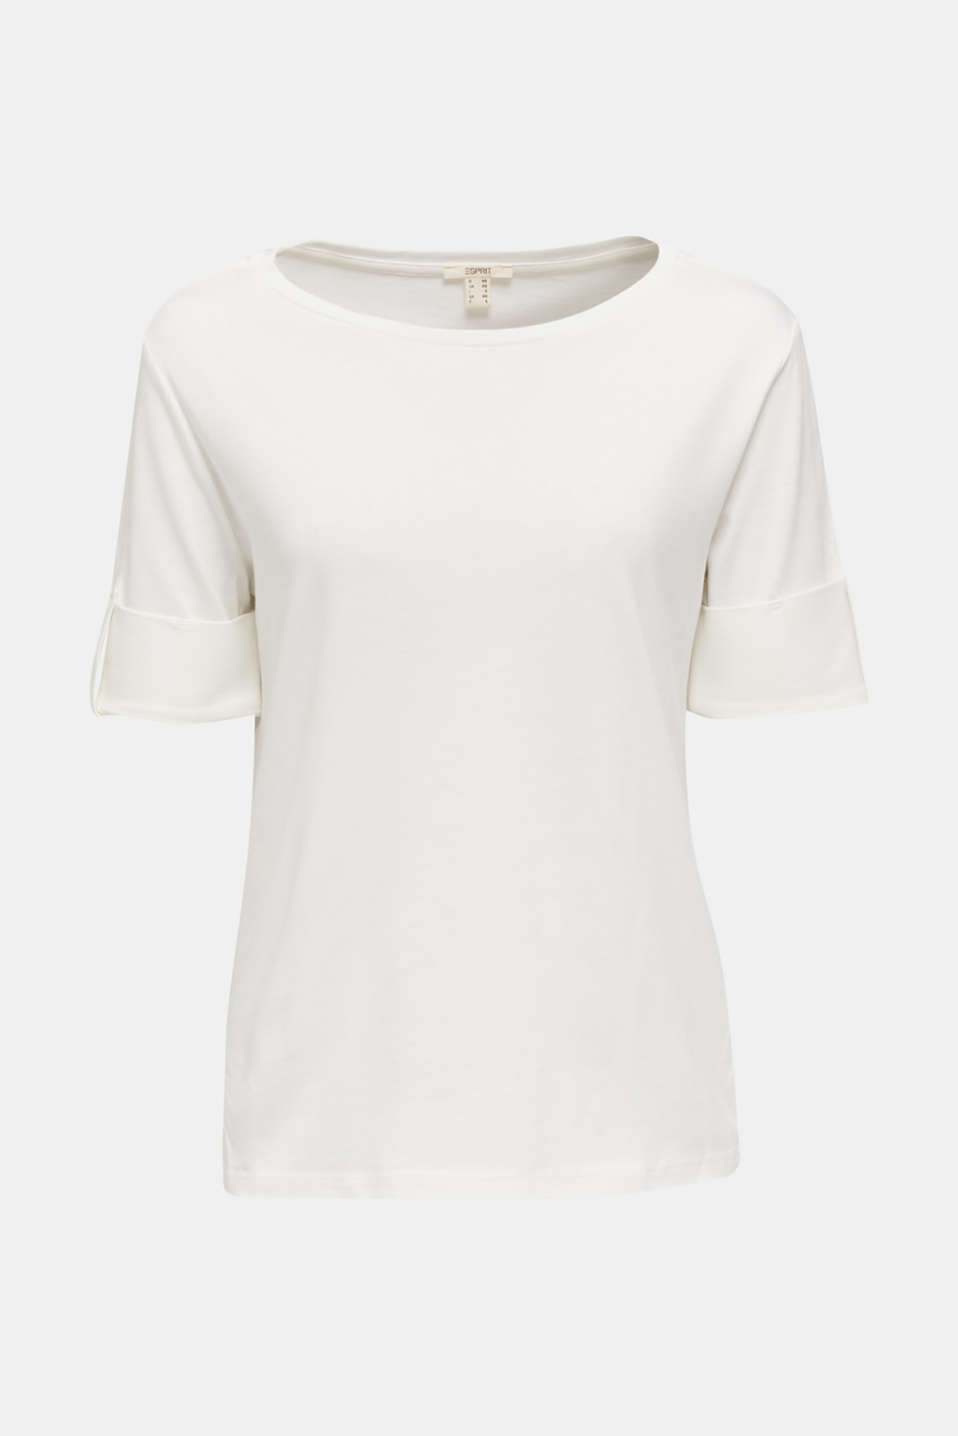 T-shirt with turn-up sleeves, OFF WHITE, detail image number 5